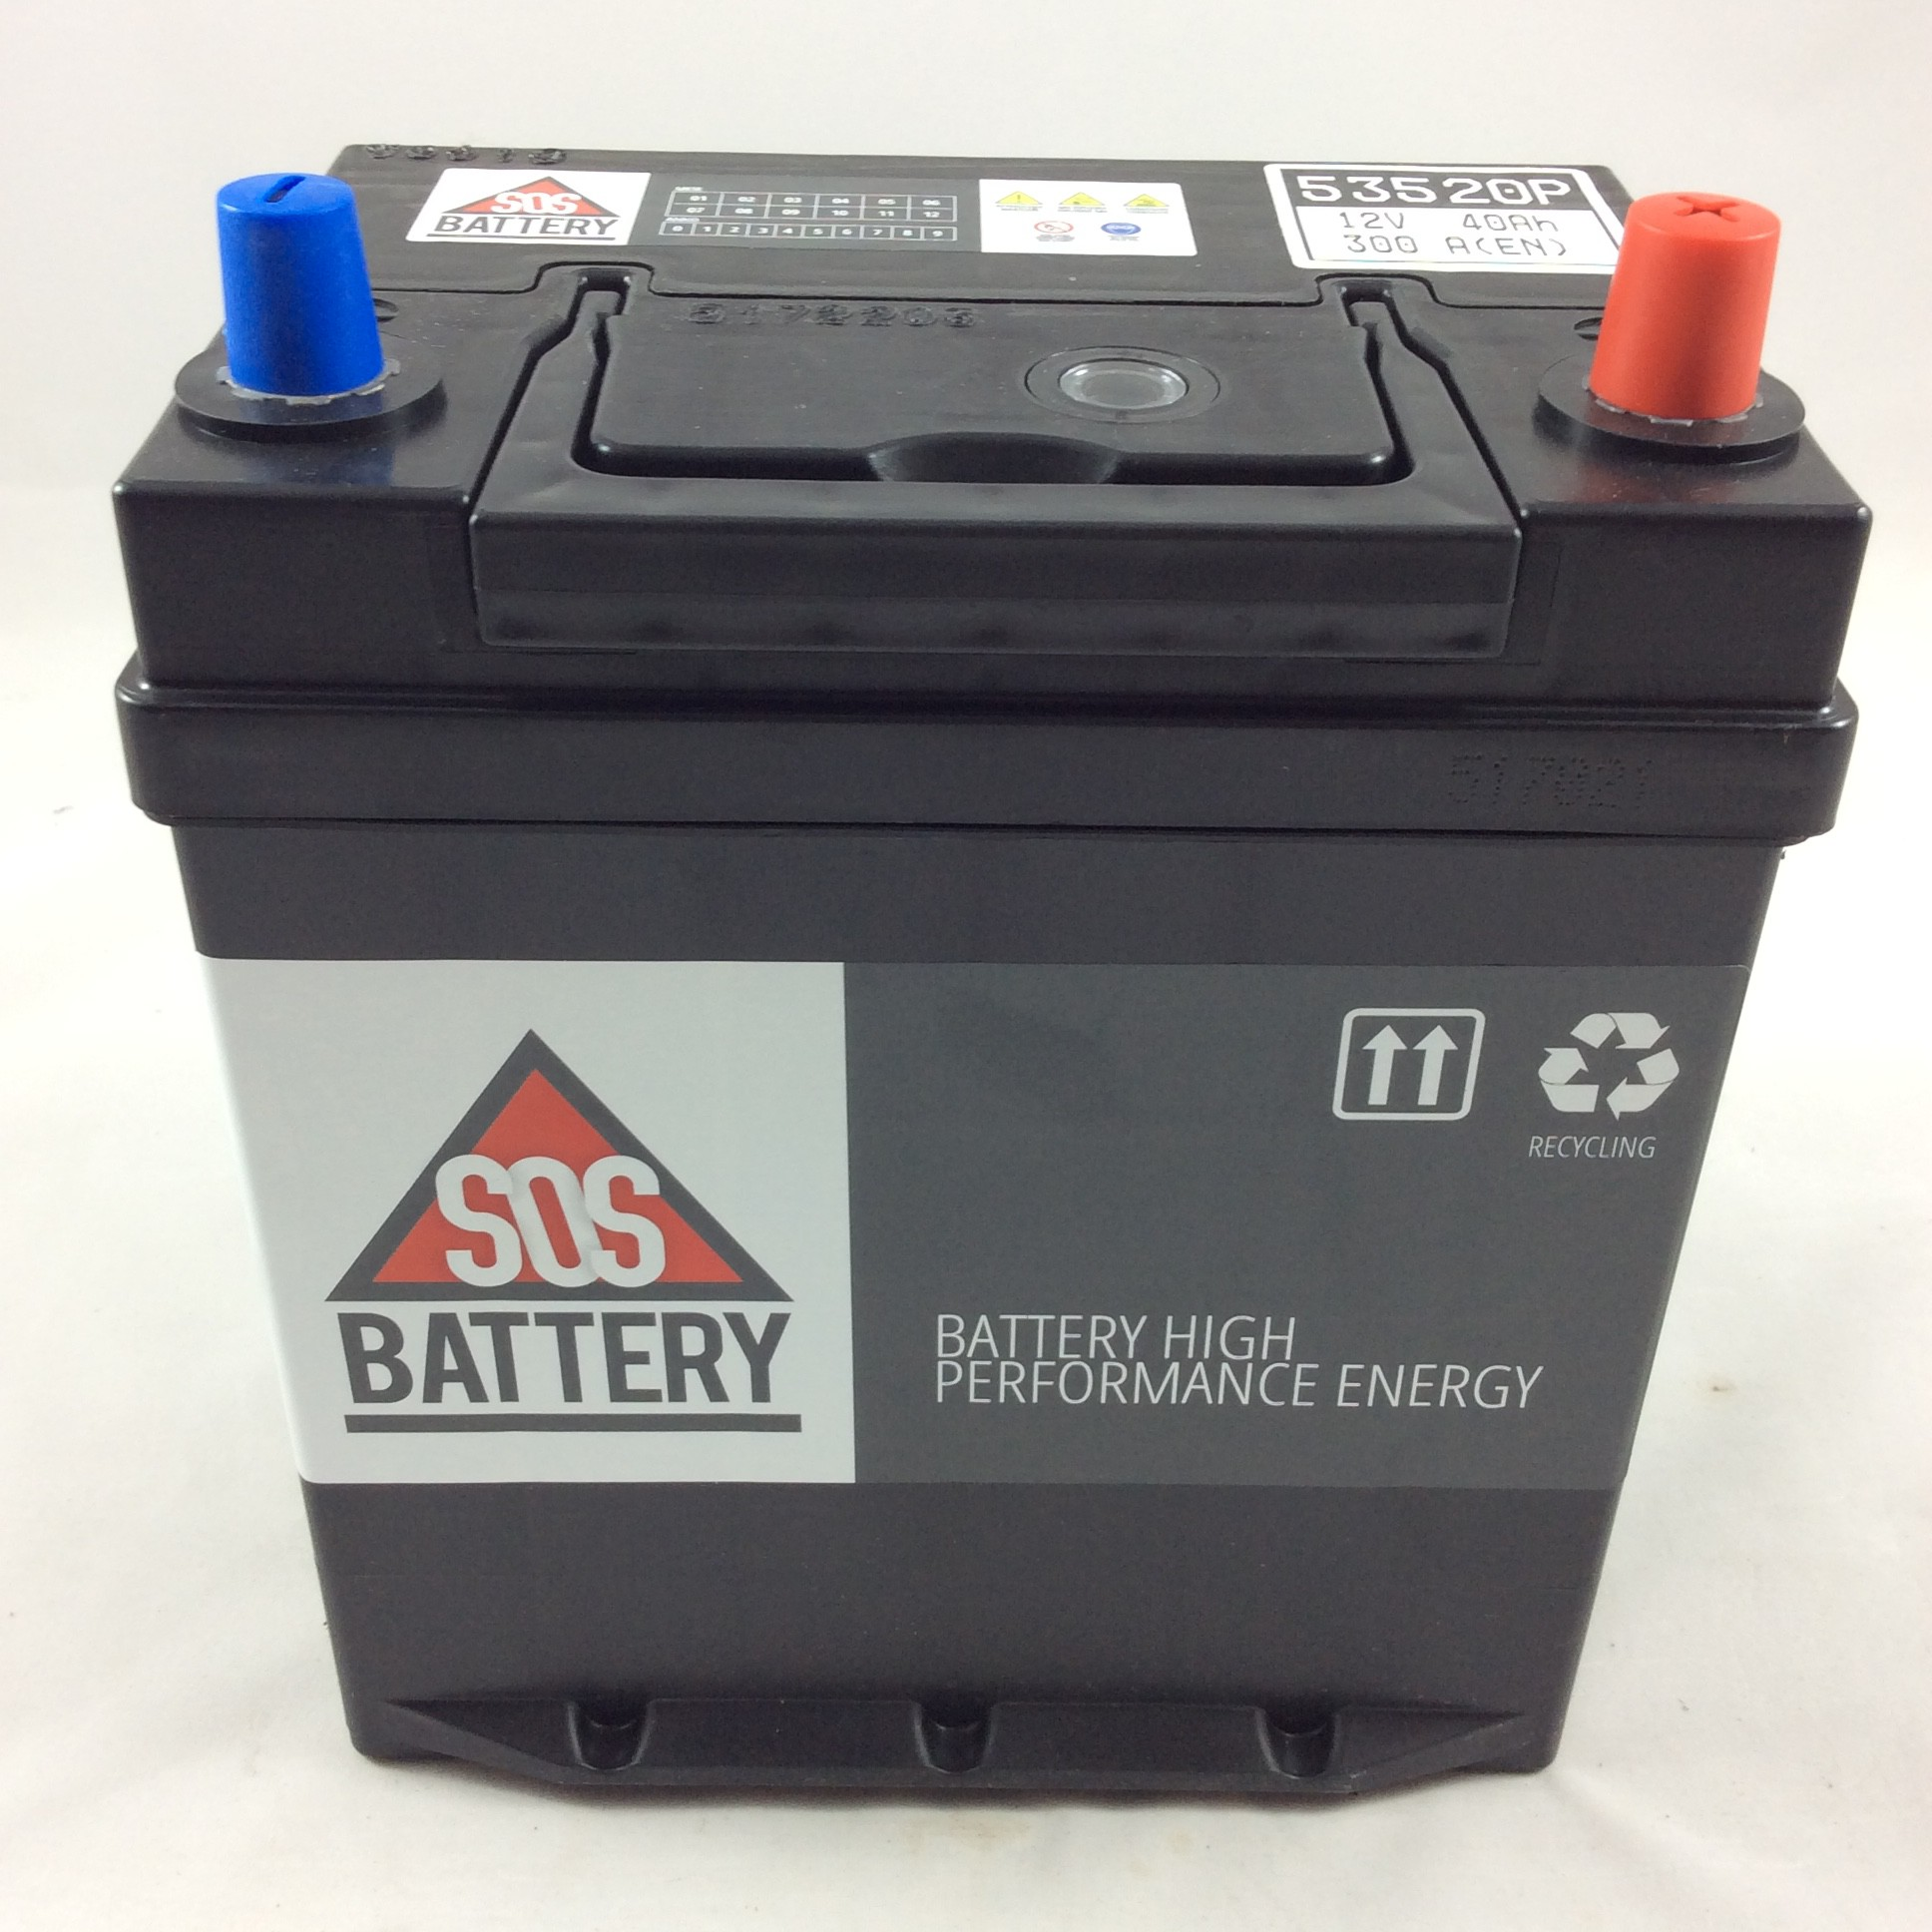 Batteria sos battery 12v 40ah 320a en 53520p sos for Bricoman batteria 12v